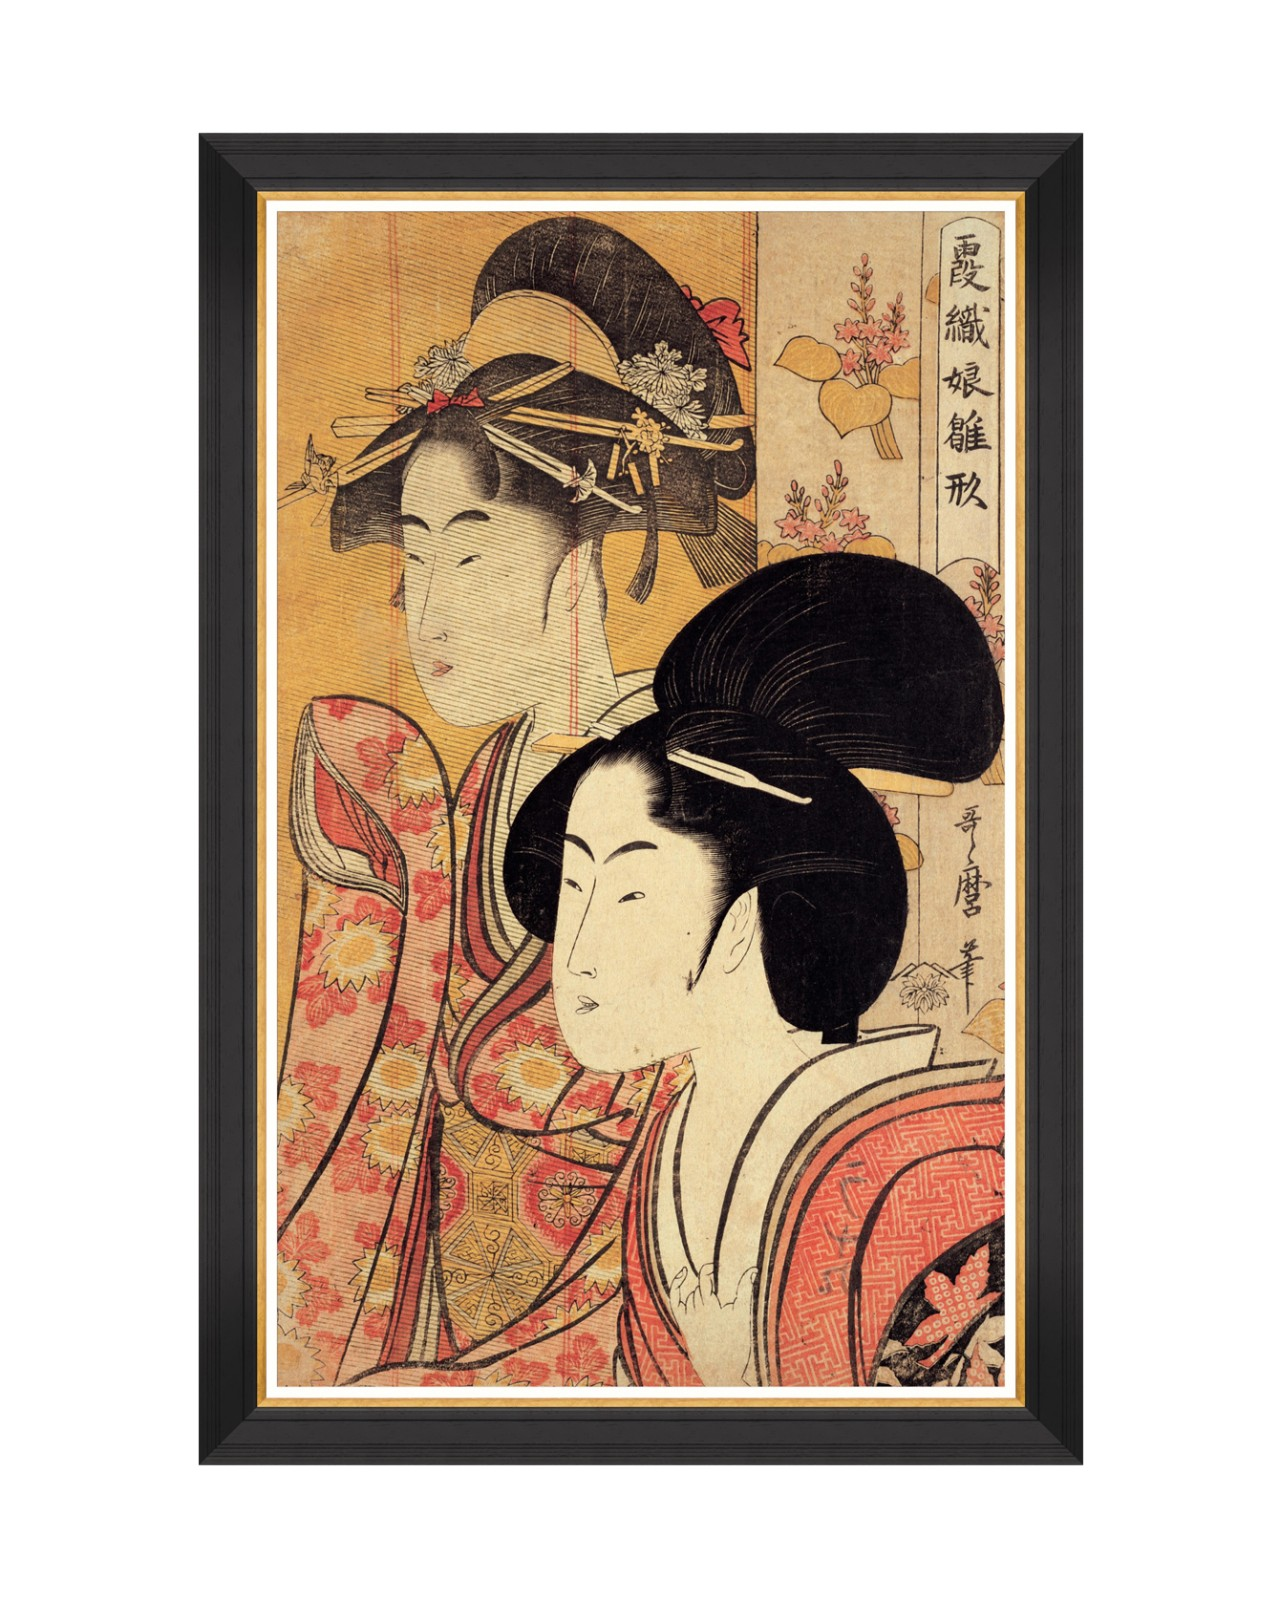 TWO BEAUTIES BY KITAGAWA UTAMARO Framed Art